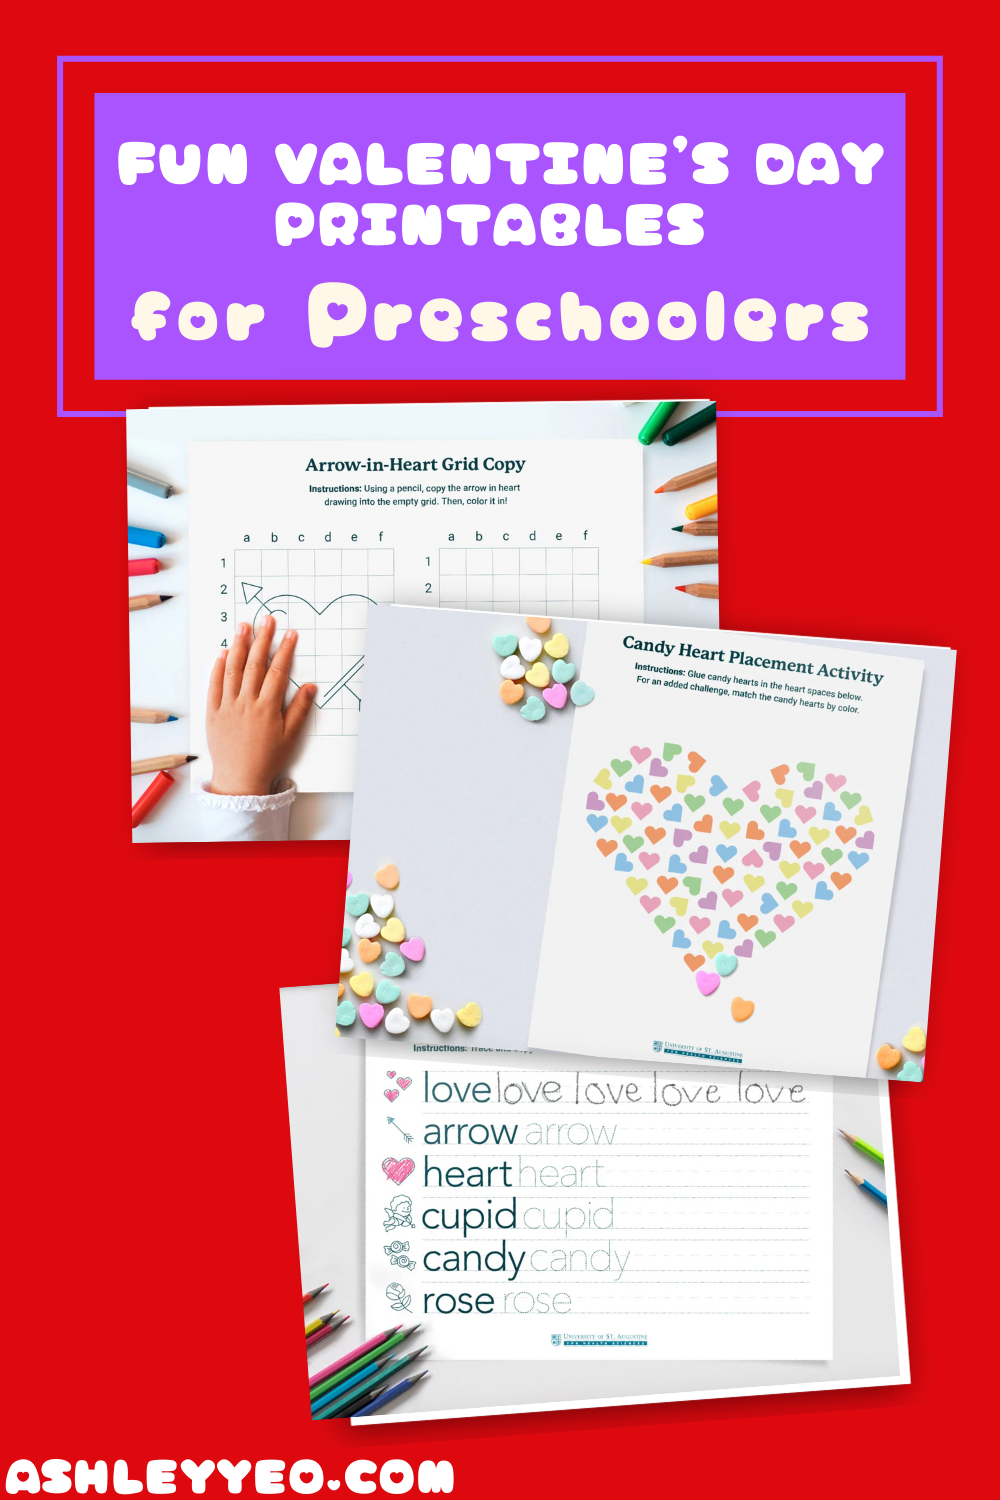 Fun Valentine's Day Printables for Preschoolers